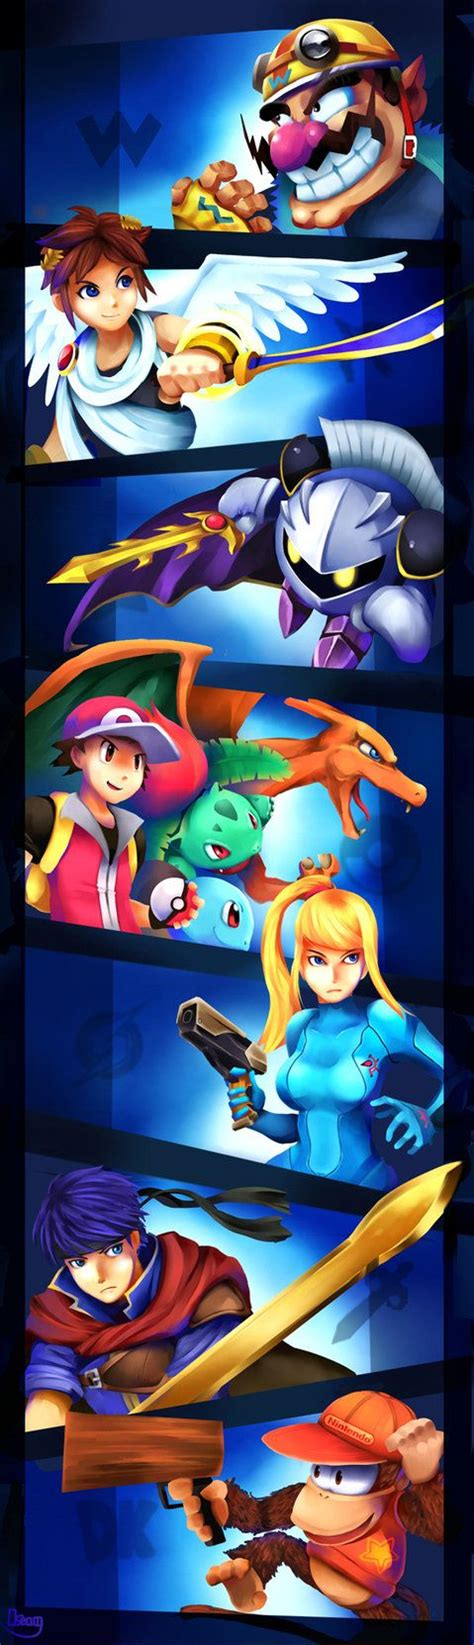 pikachu knows best 56 by dopplegager on deviantart 17 best images about super smash bros on pinterest